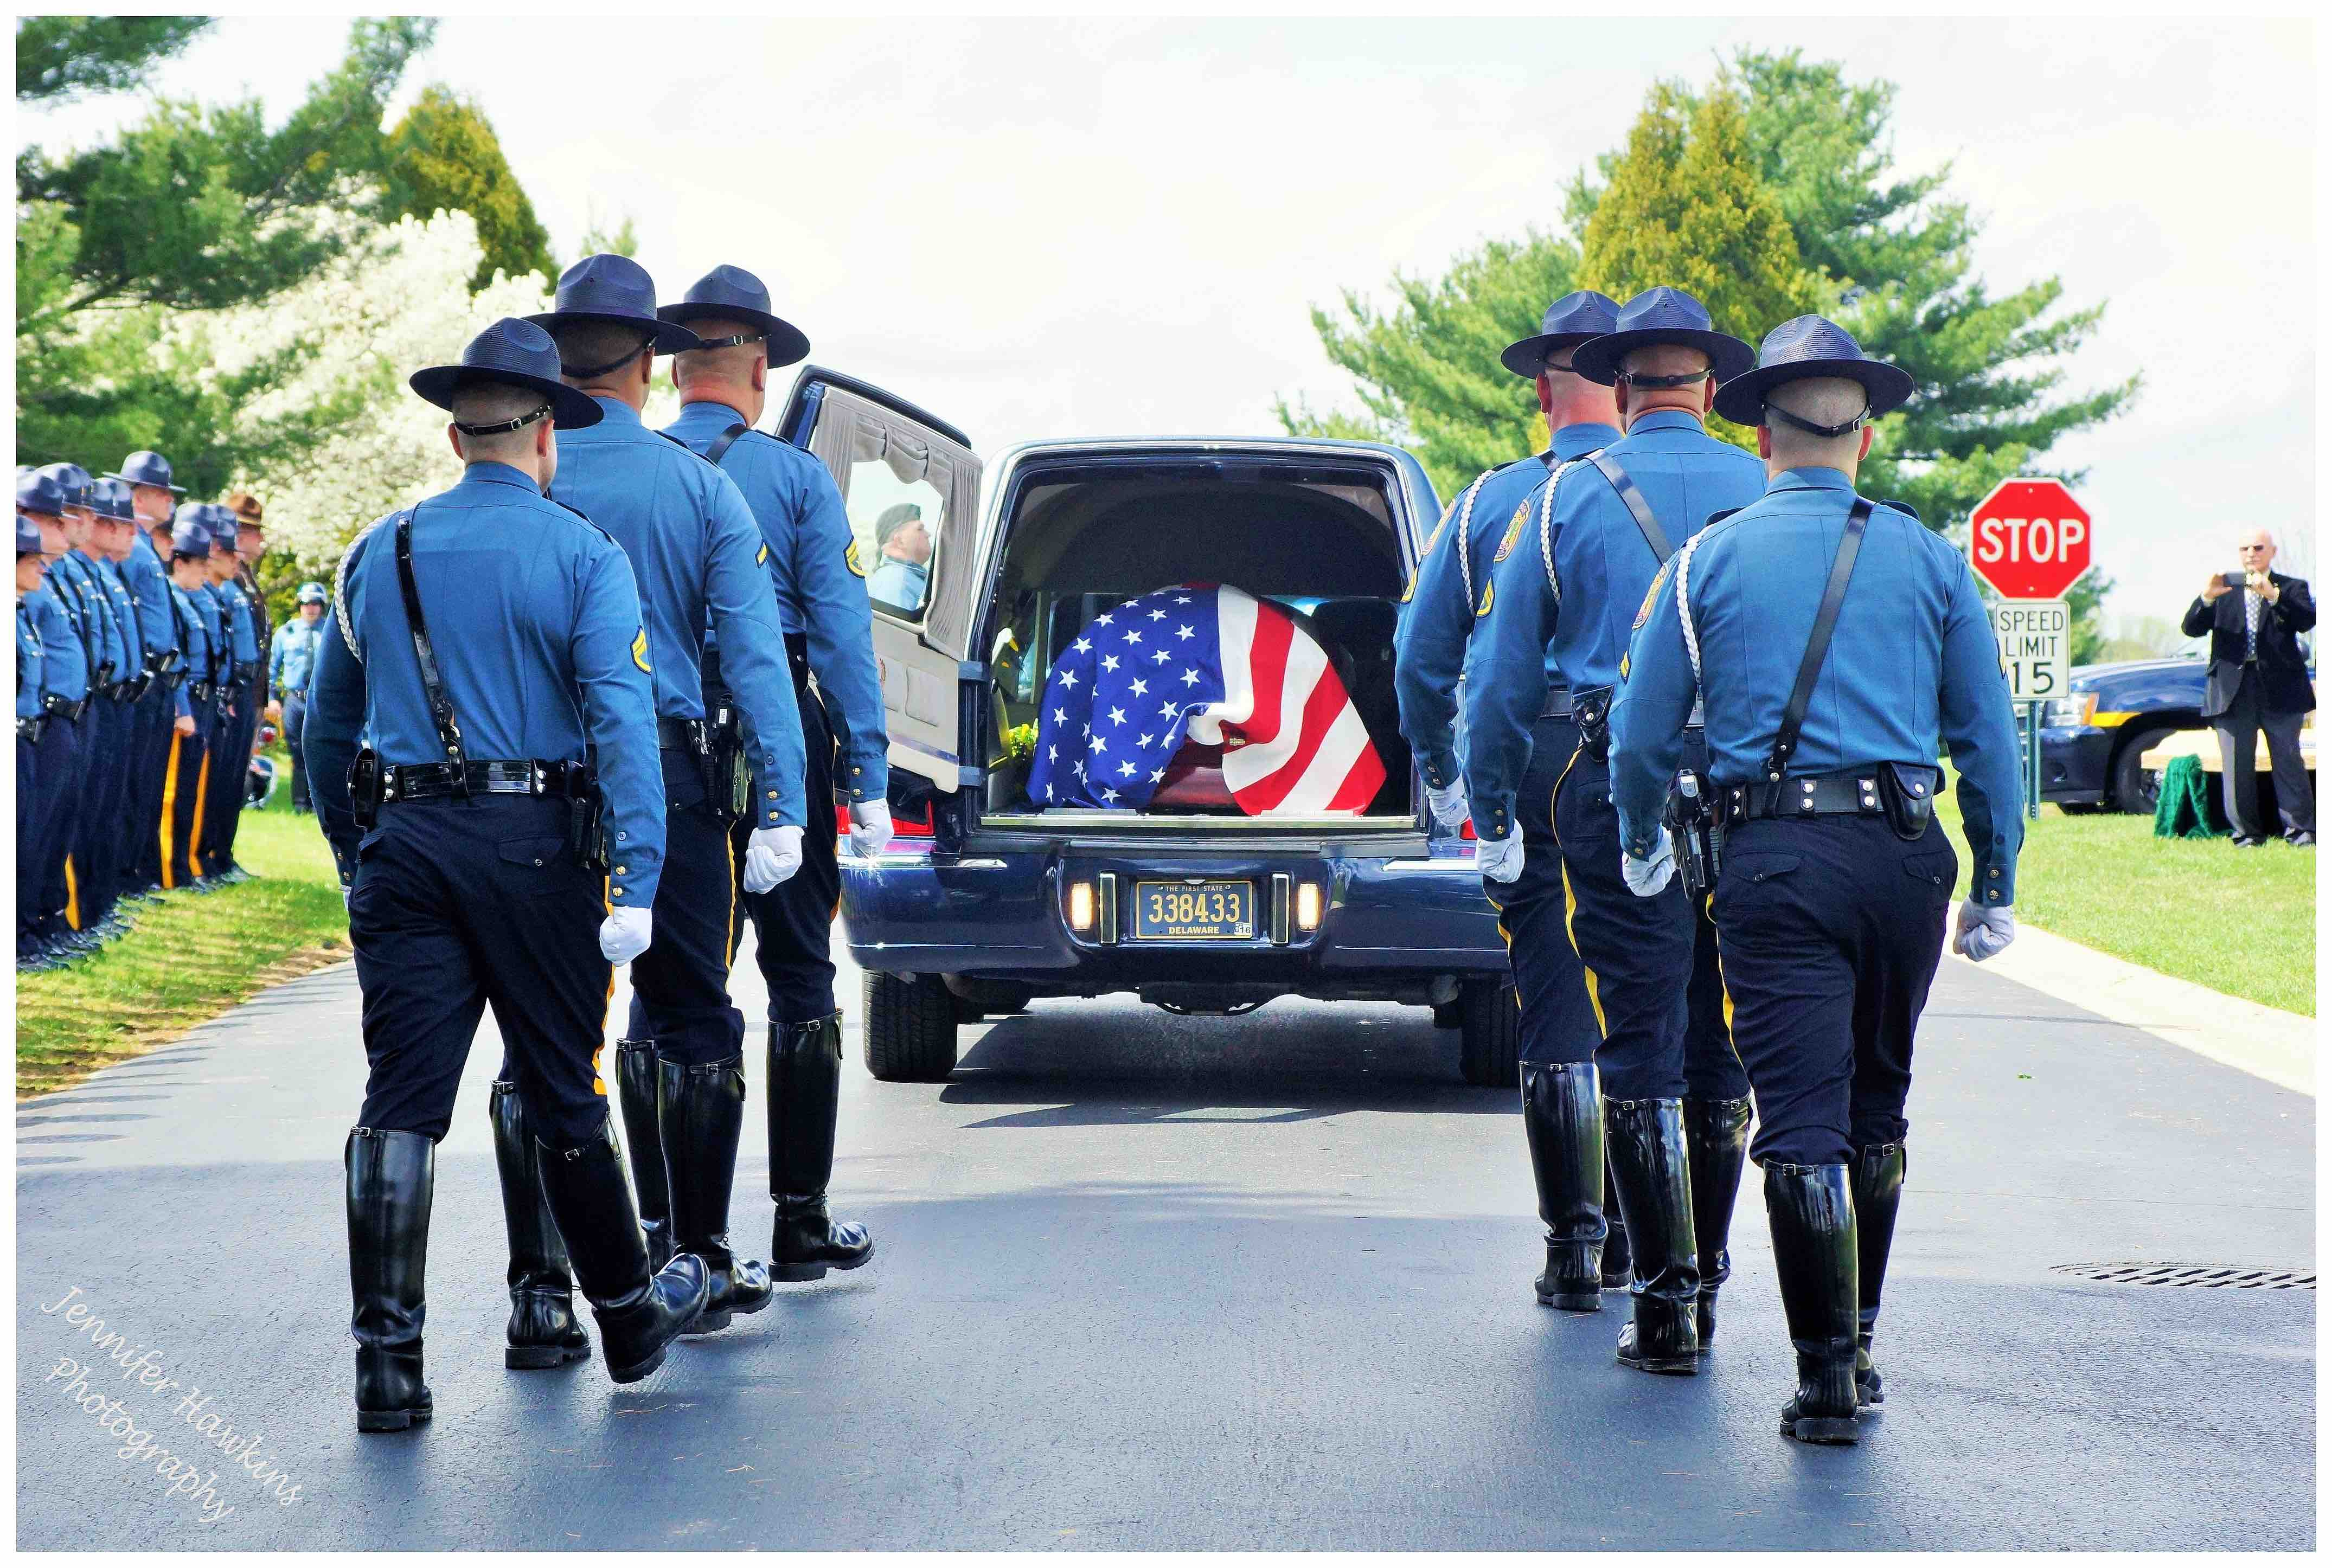 Delaware State Police - We Honor Those Killed In The Line of Duty